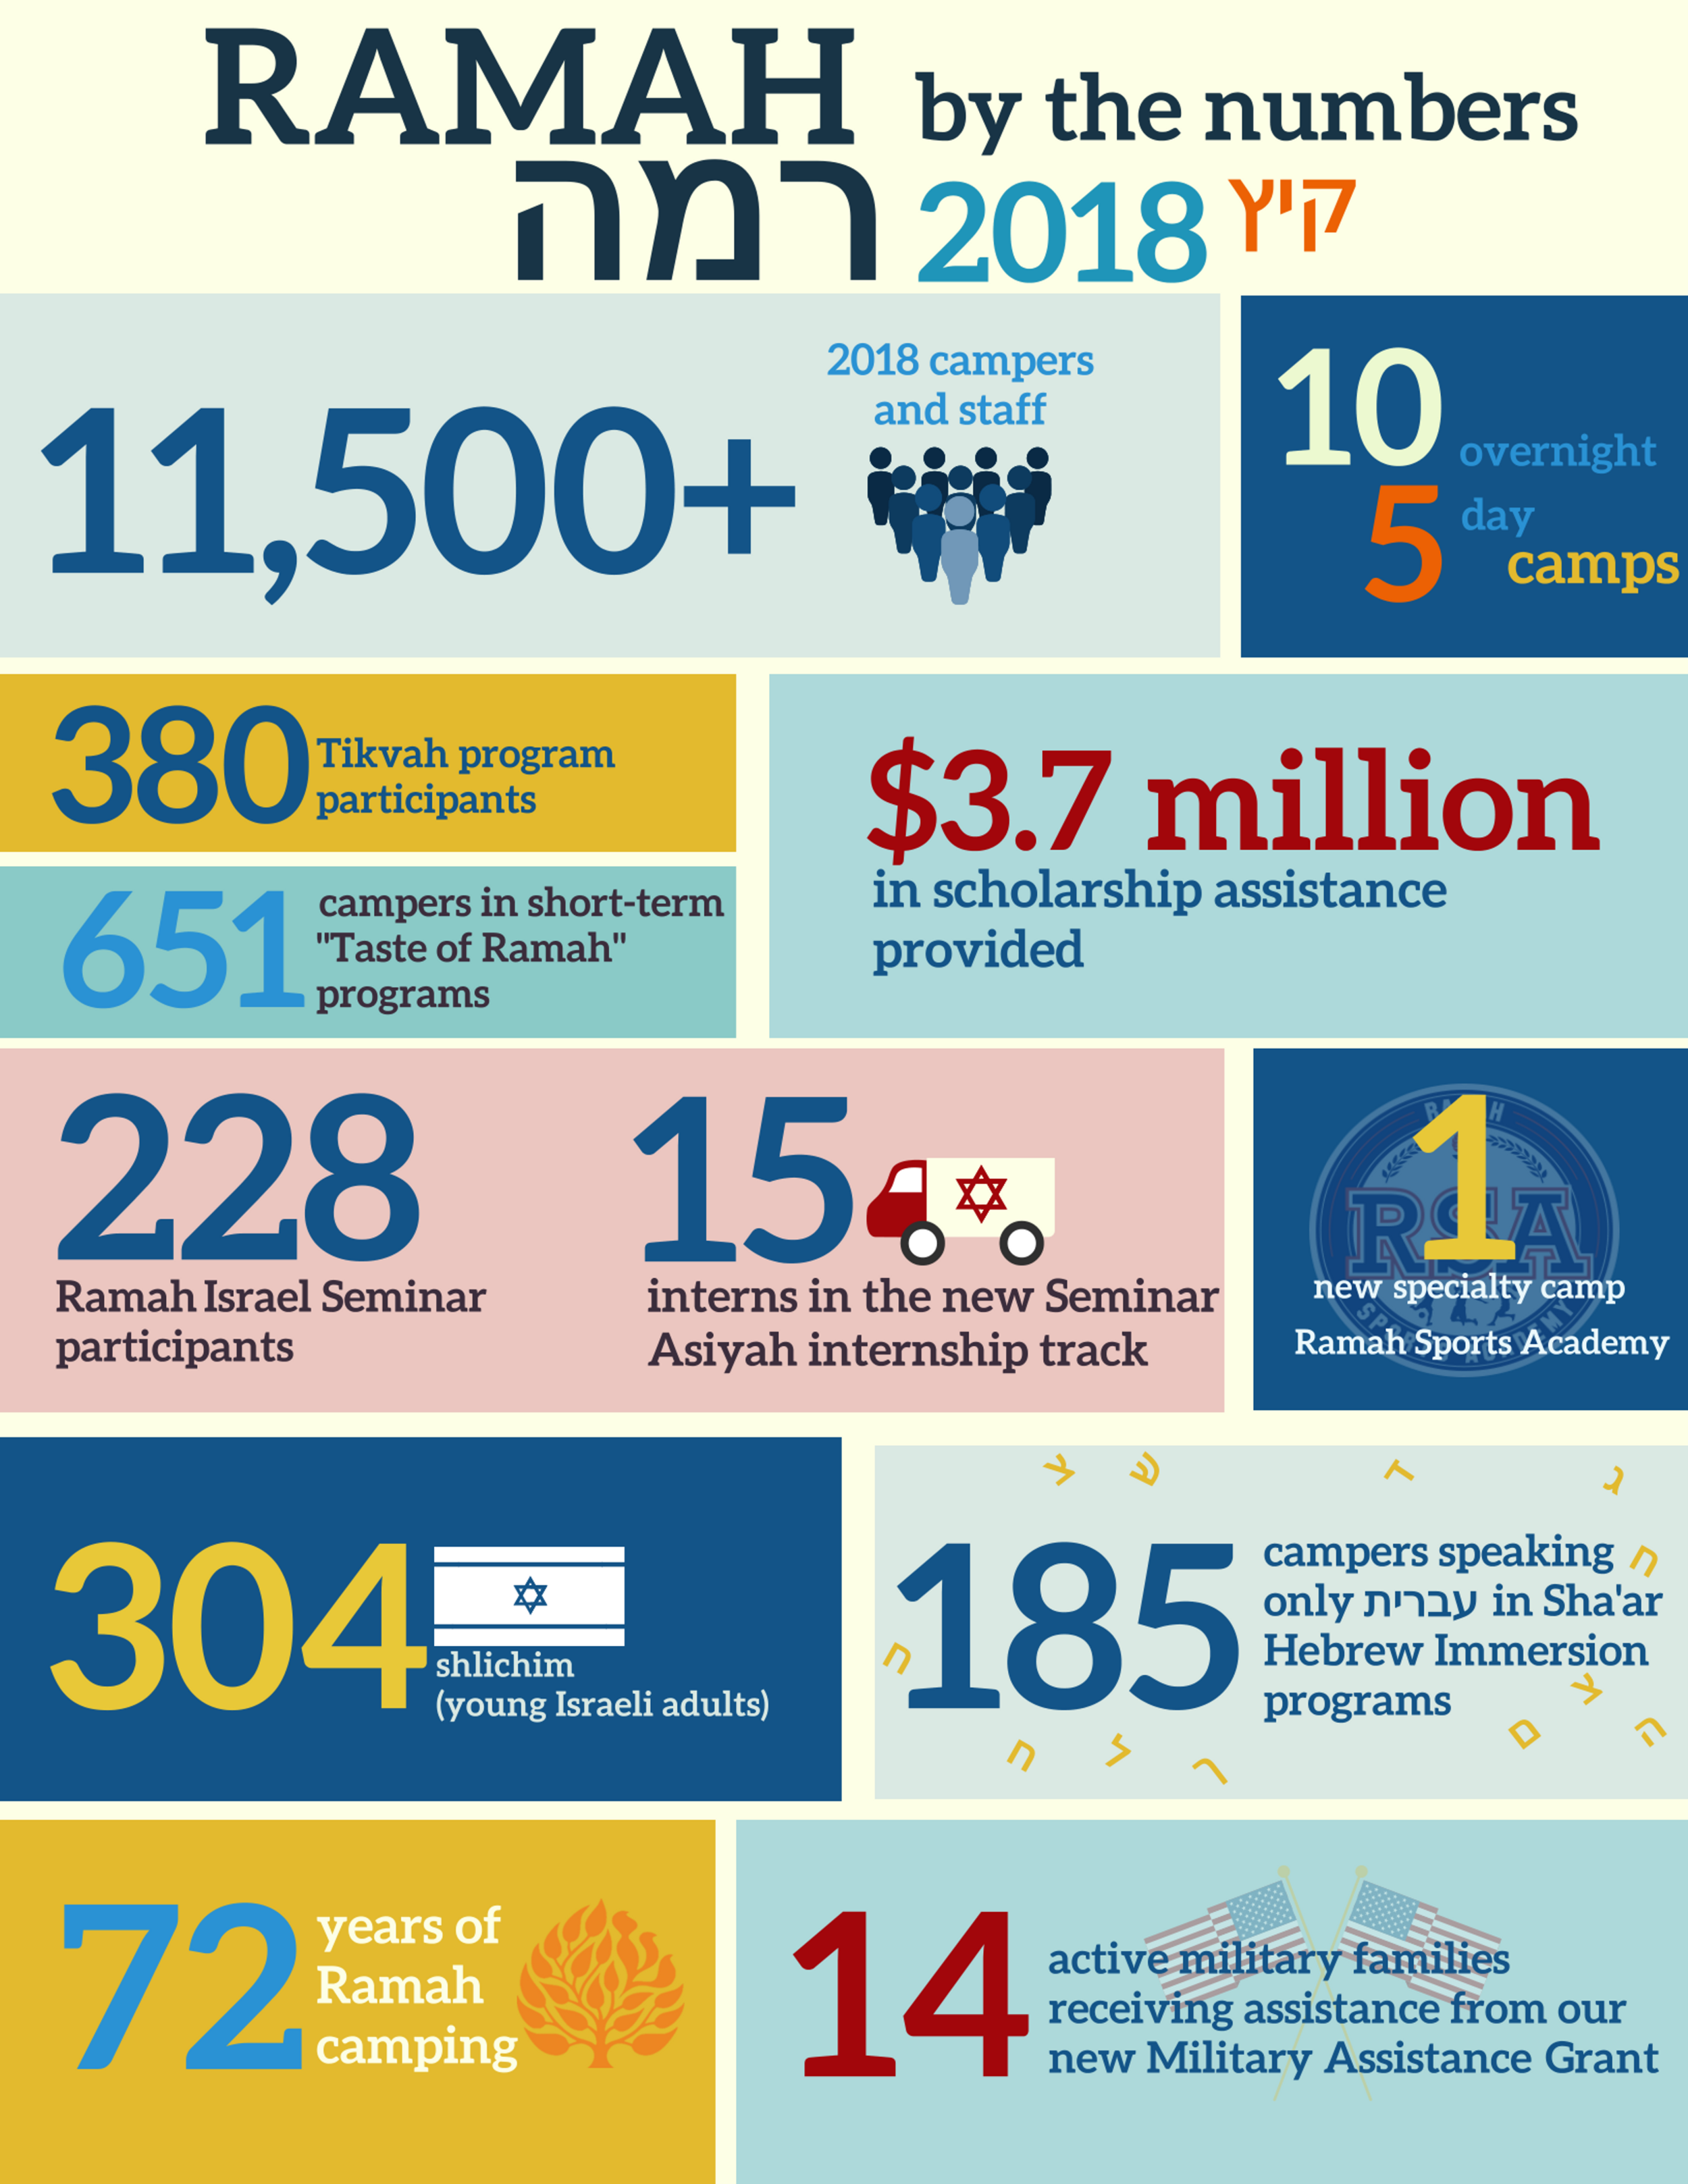 Ramah by the Numbers 2018 infographic.png